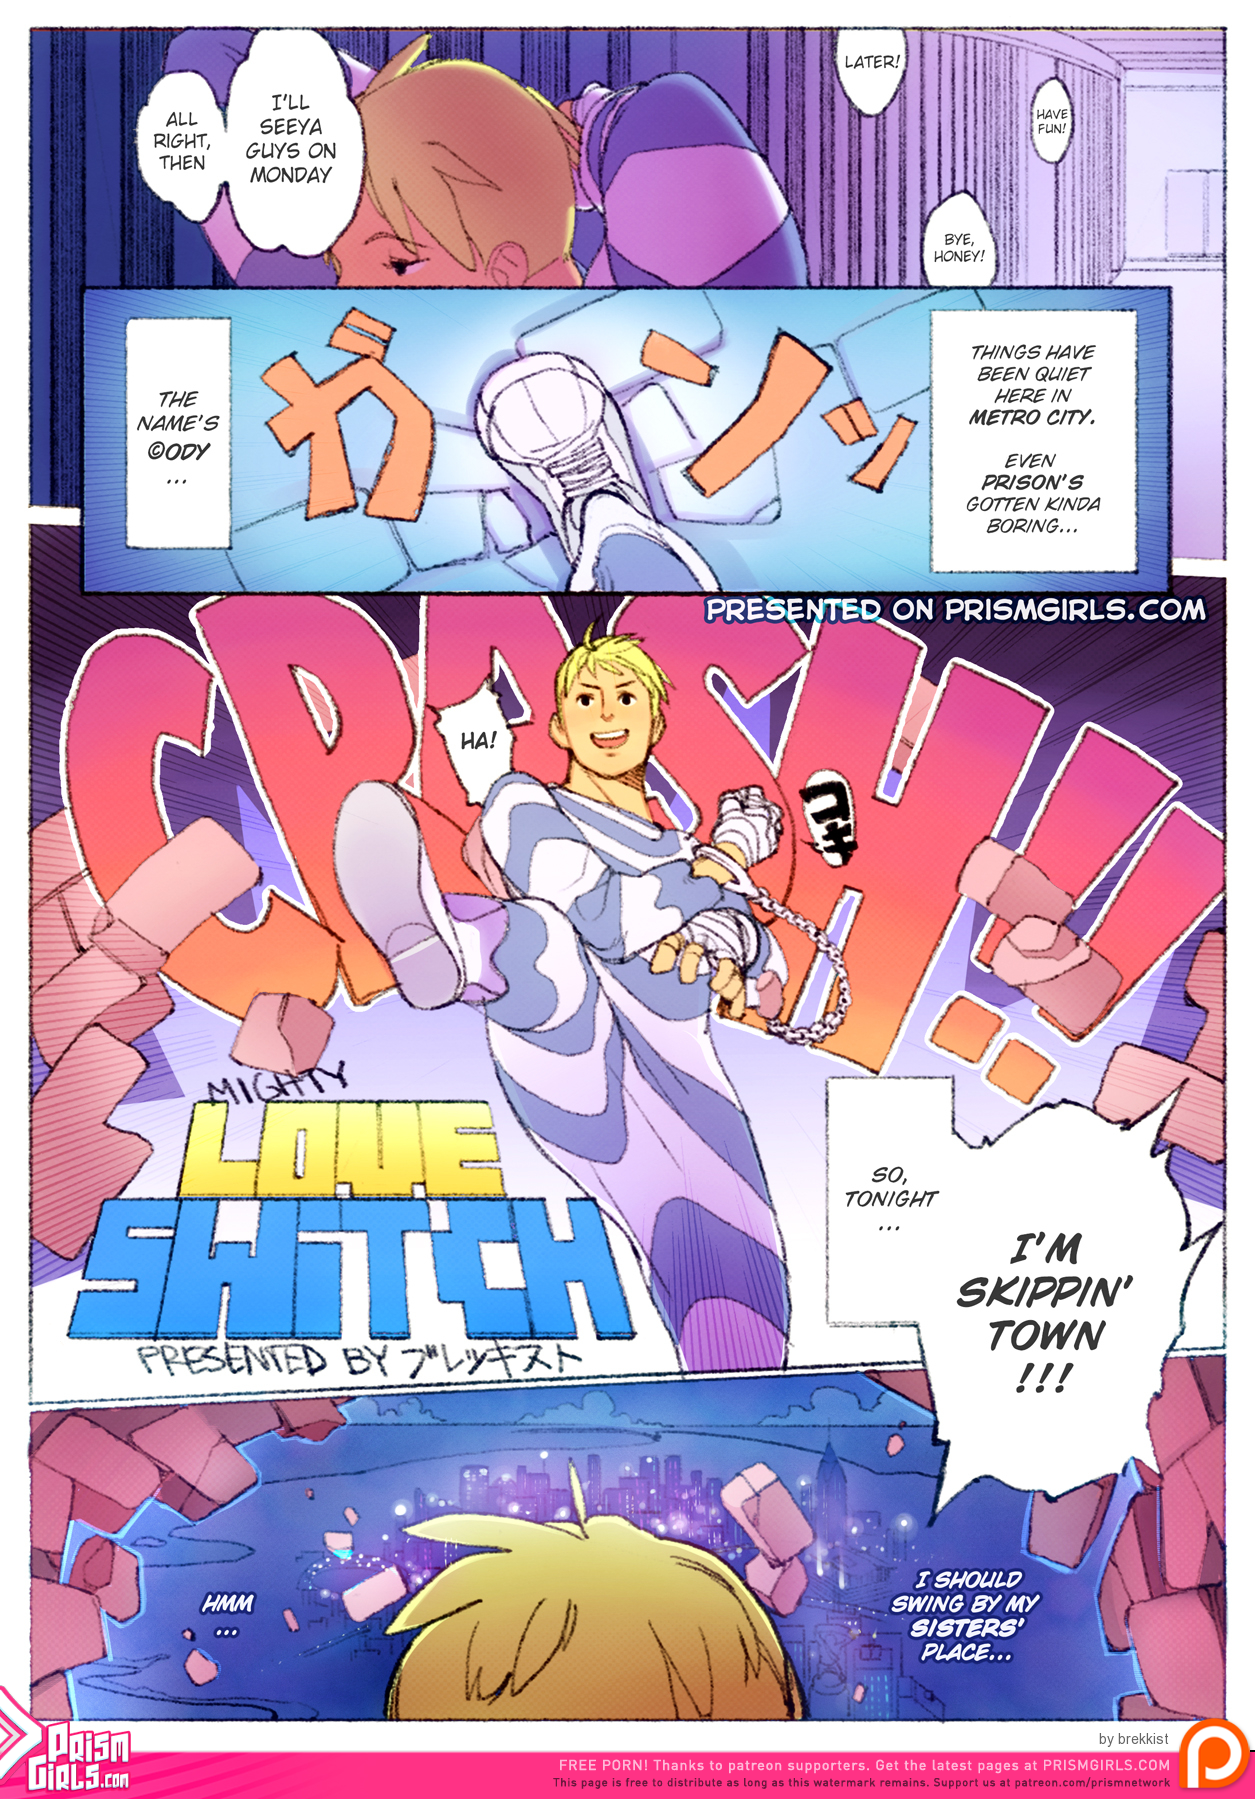 [Prism Girls (brekkist)] Mighty Love Switch (Mighty Switch Force!, Final Fight) [English]